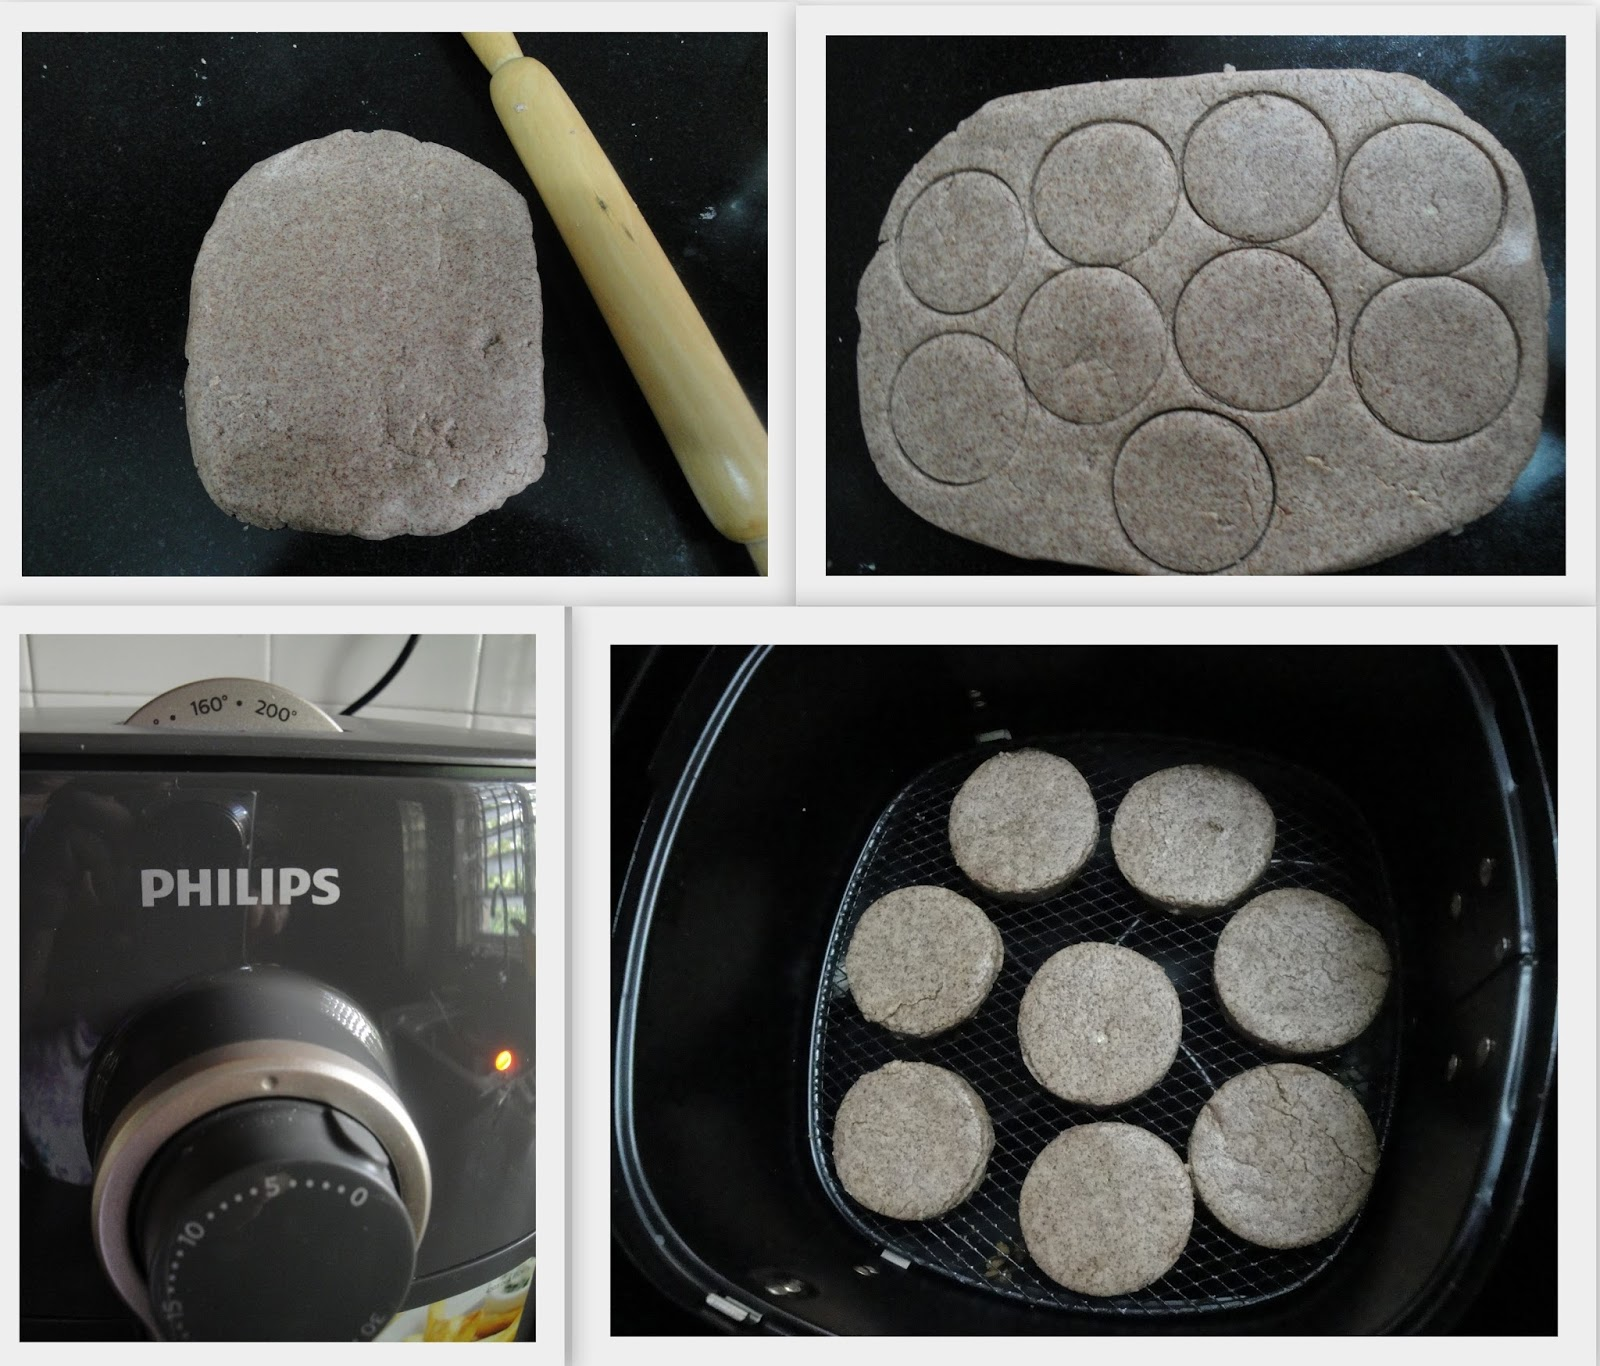 ragi-biscuits-with-airfryer,ragi-biscuits-with-airfryer-recipe